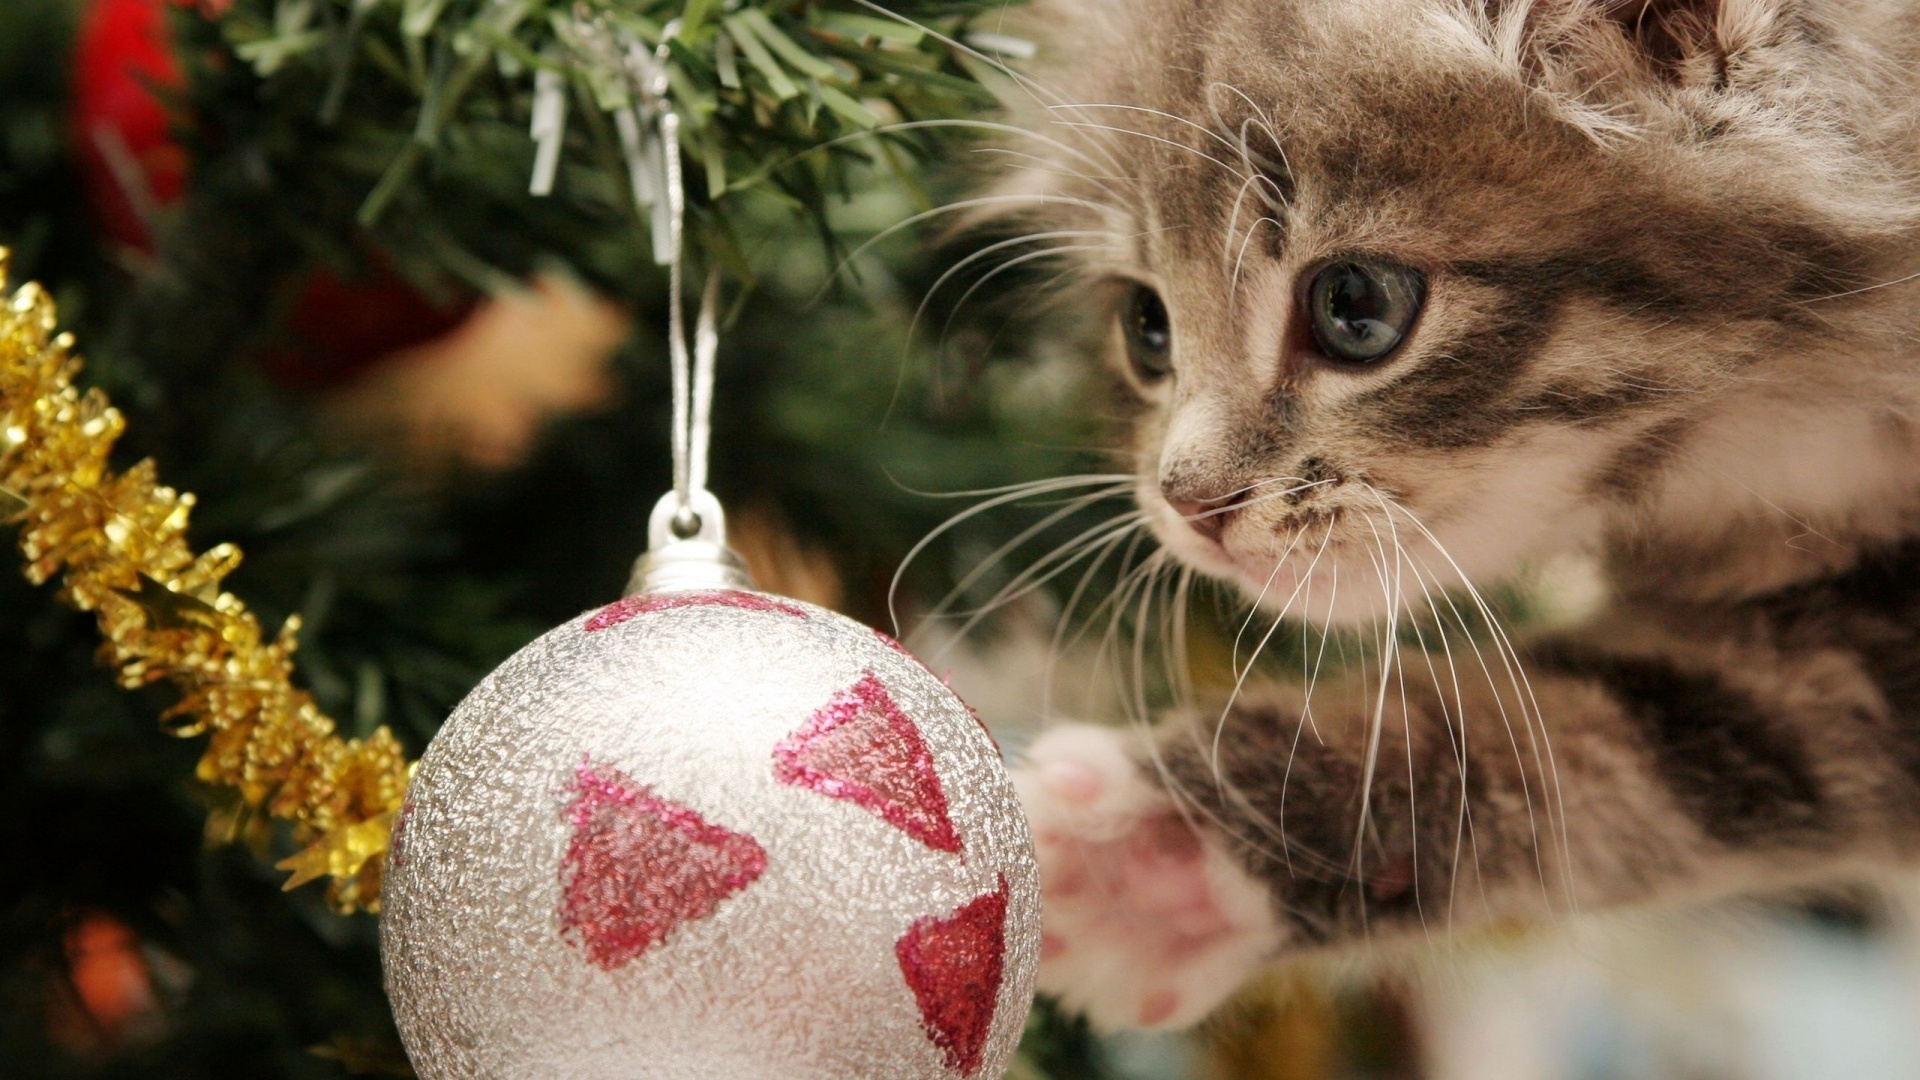 Wallpaper New Year New Year Toy Cat Hd Picture